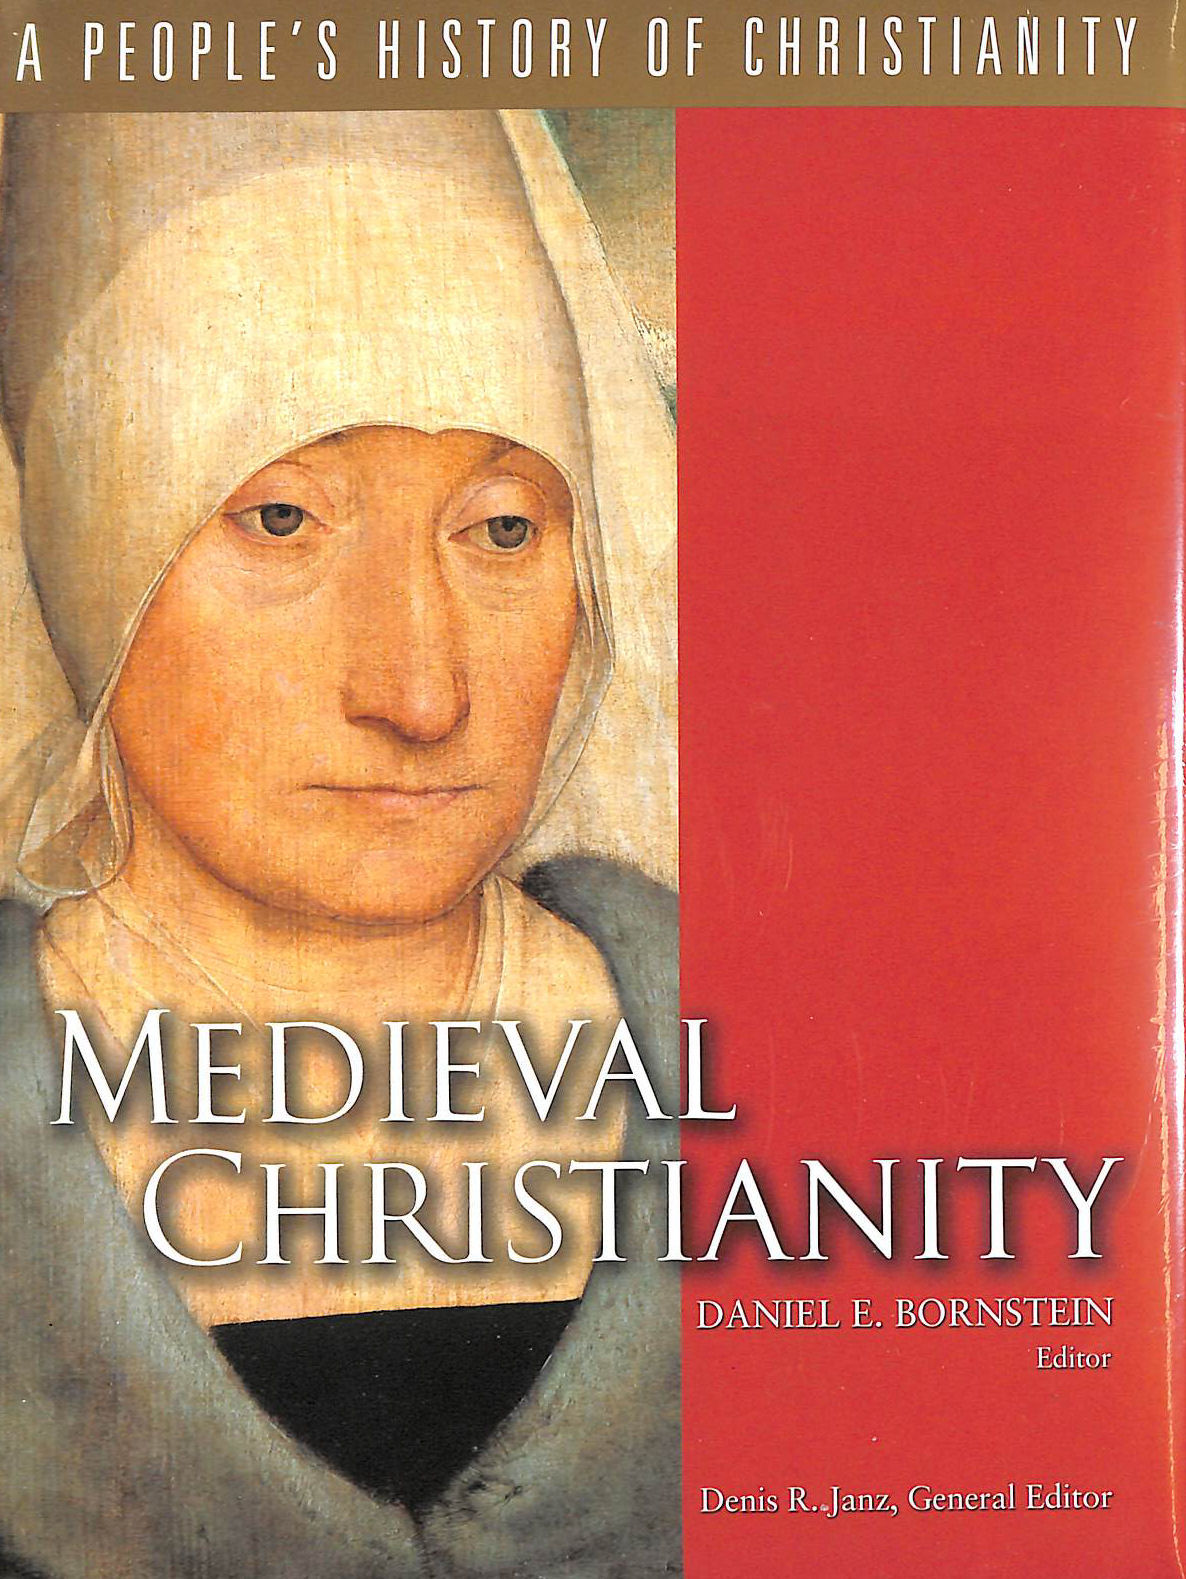 Image for Medieval Christianity: A People's History Of Christianity, Volume 4 (People's History of Christianity S.)